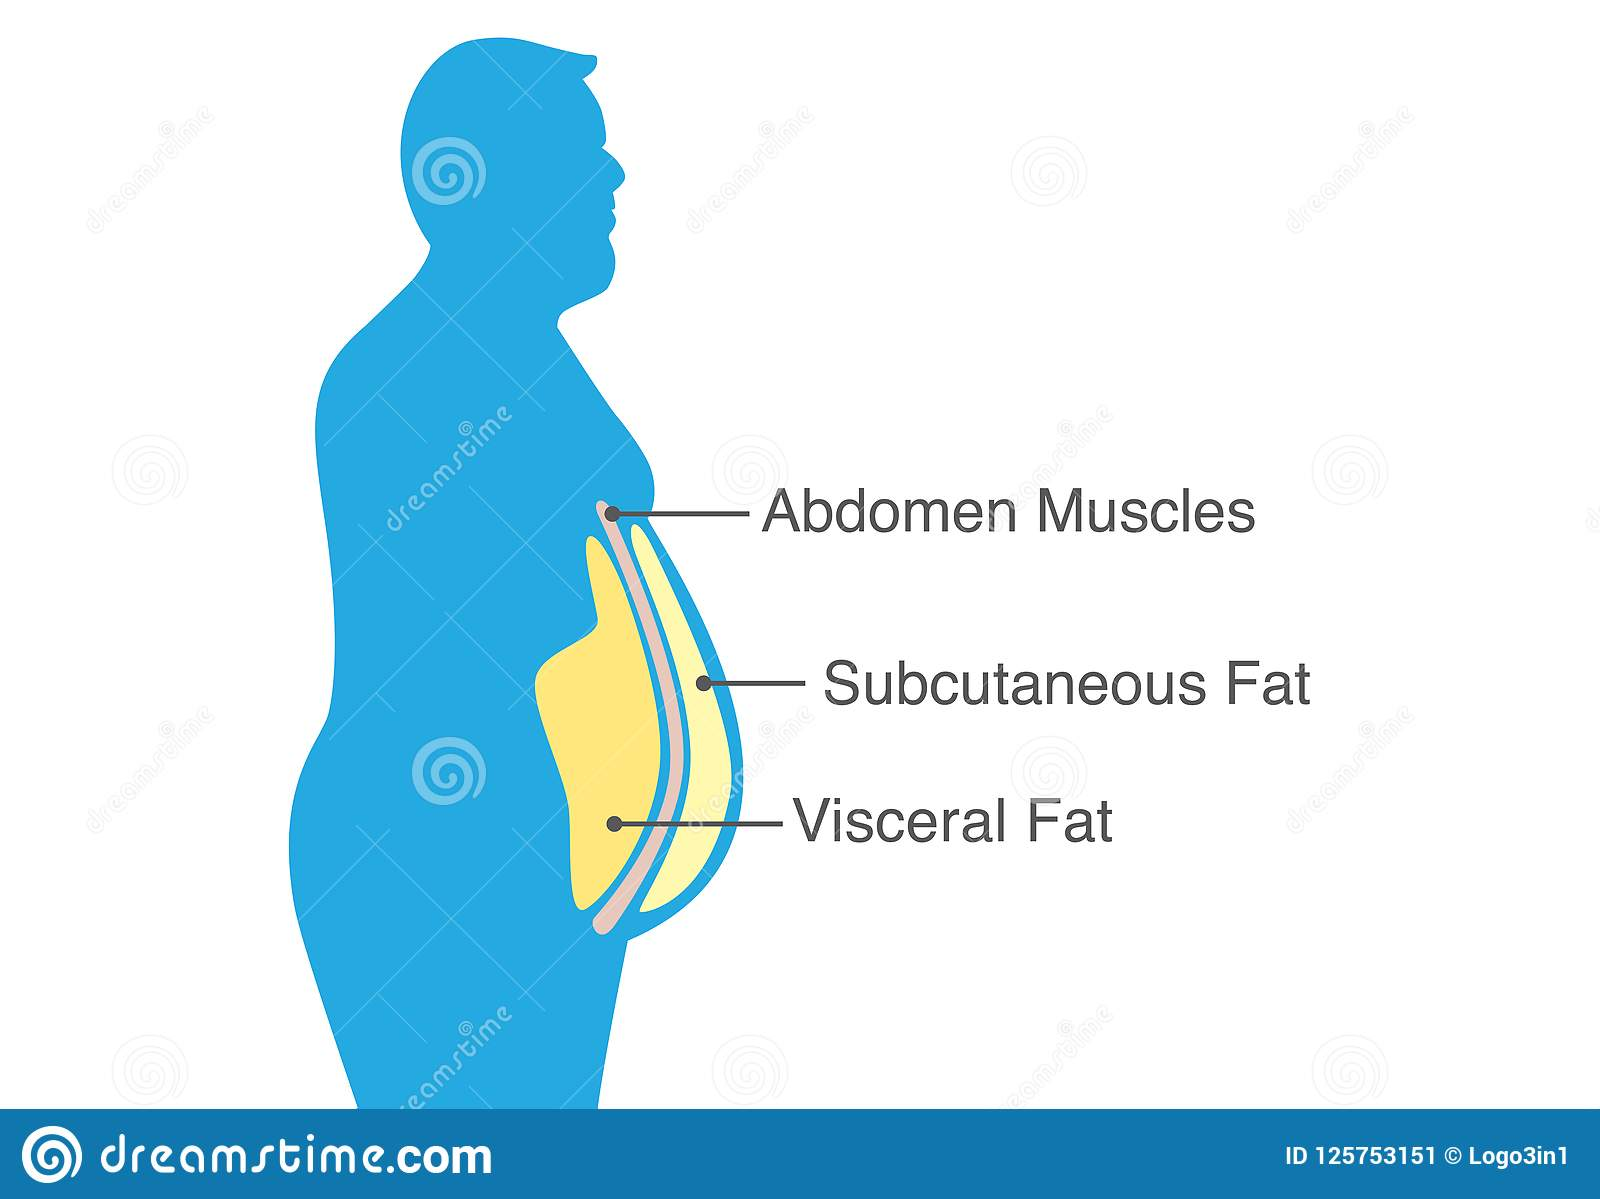 visceral fat and subcutaneous fat that accumulate around your waistline